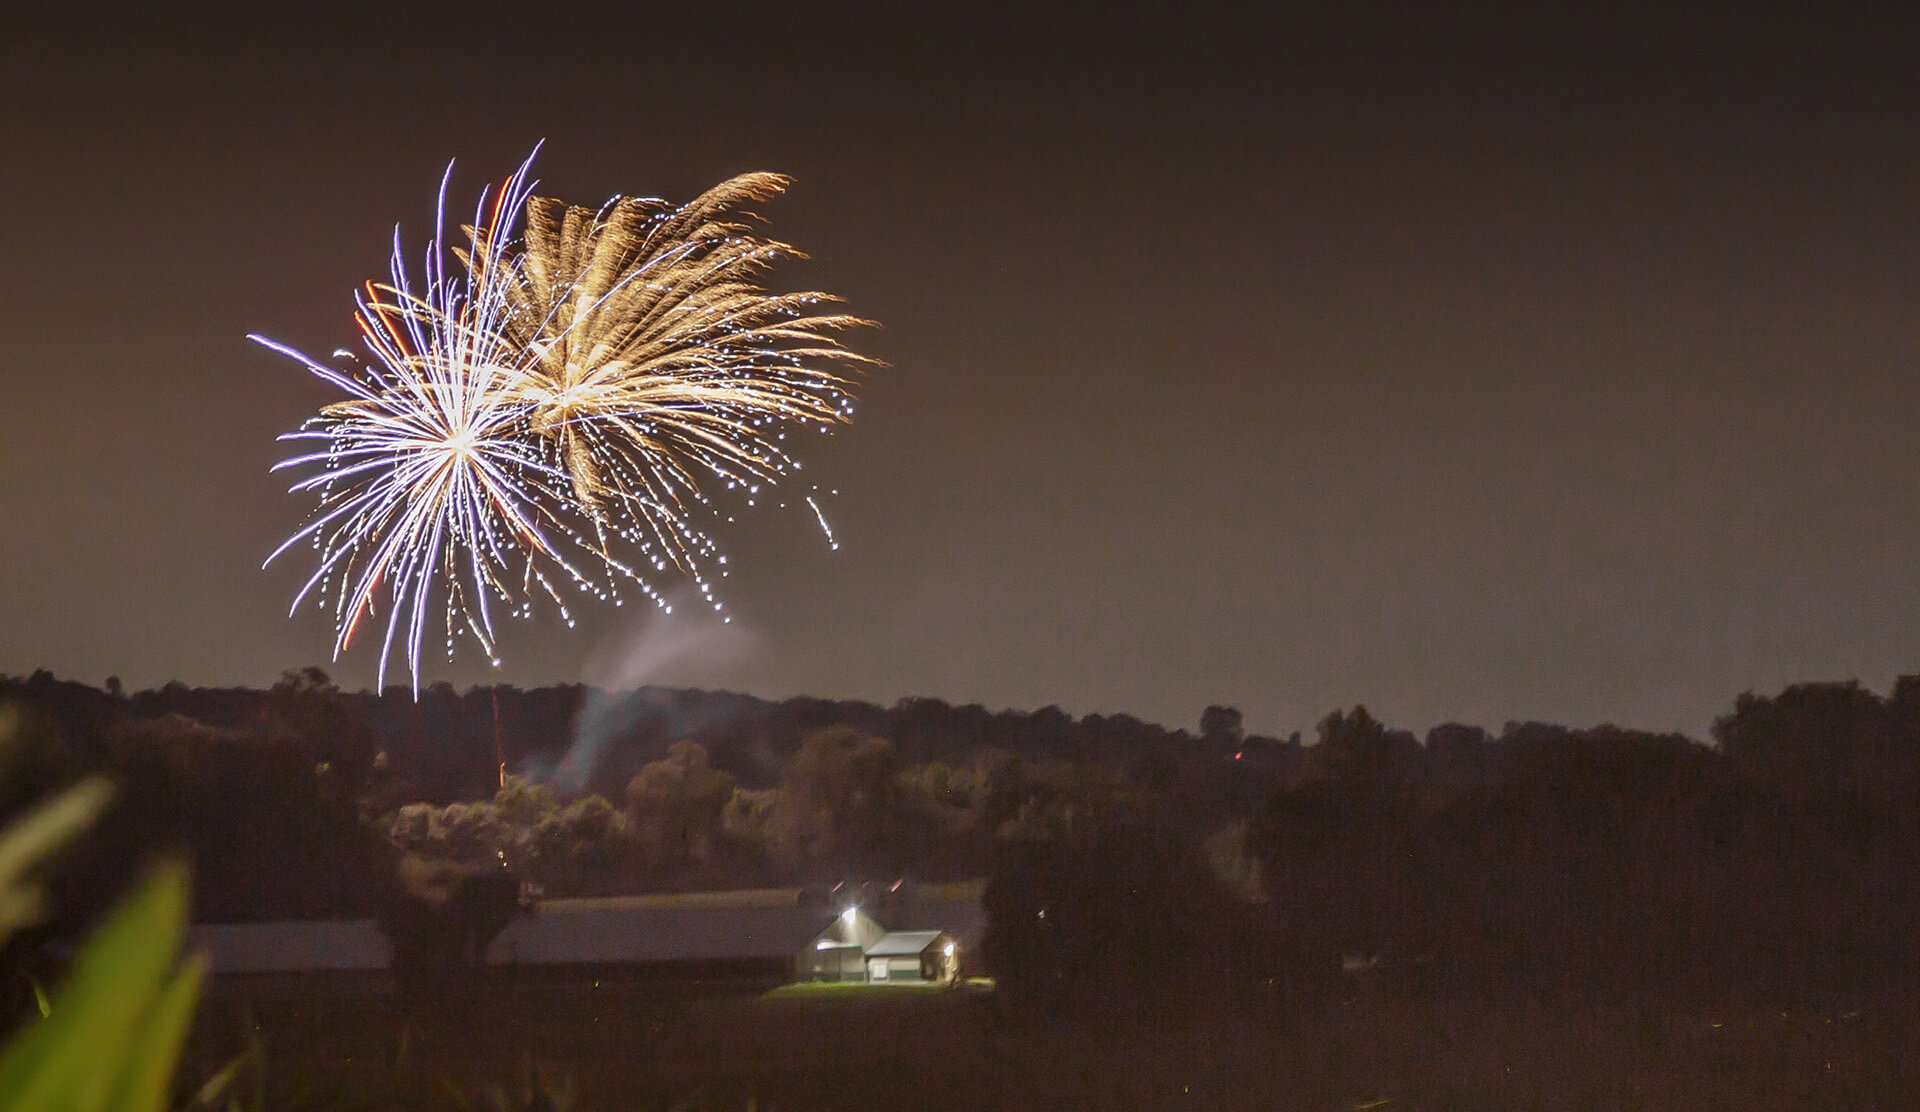 fireworks over a barn